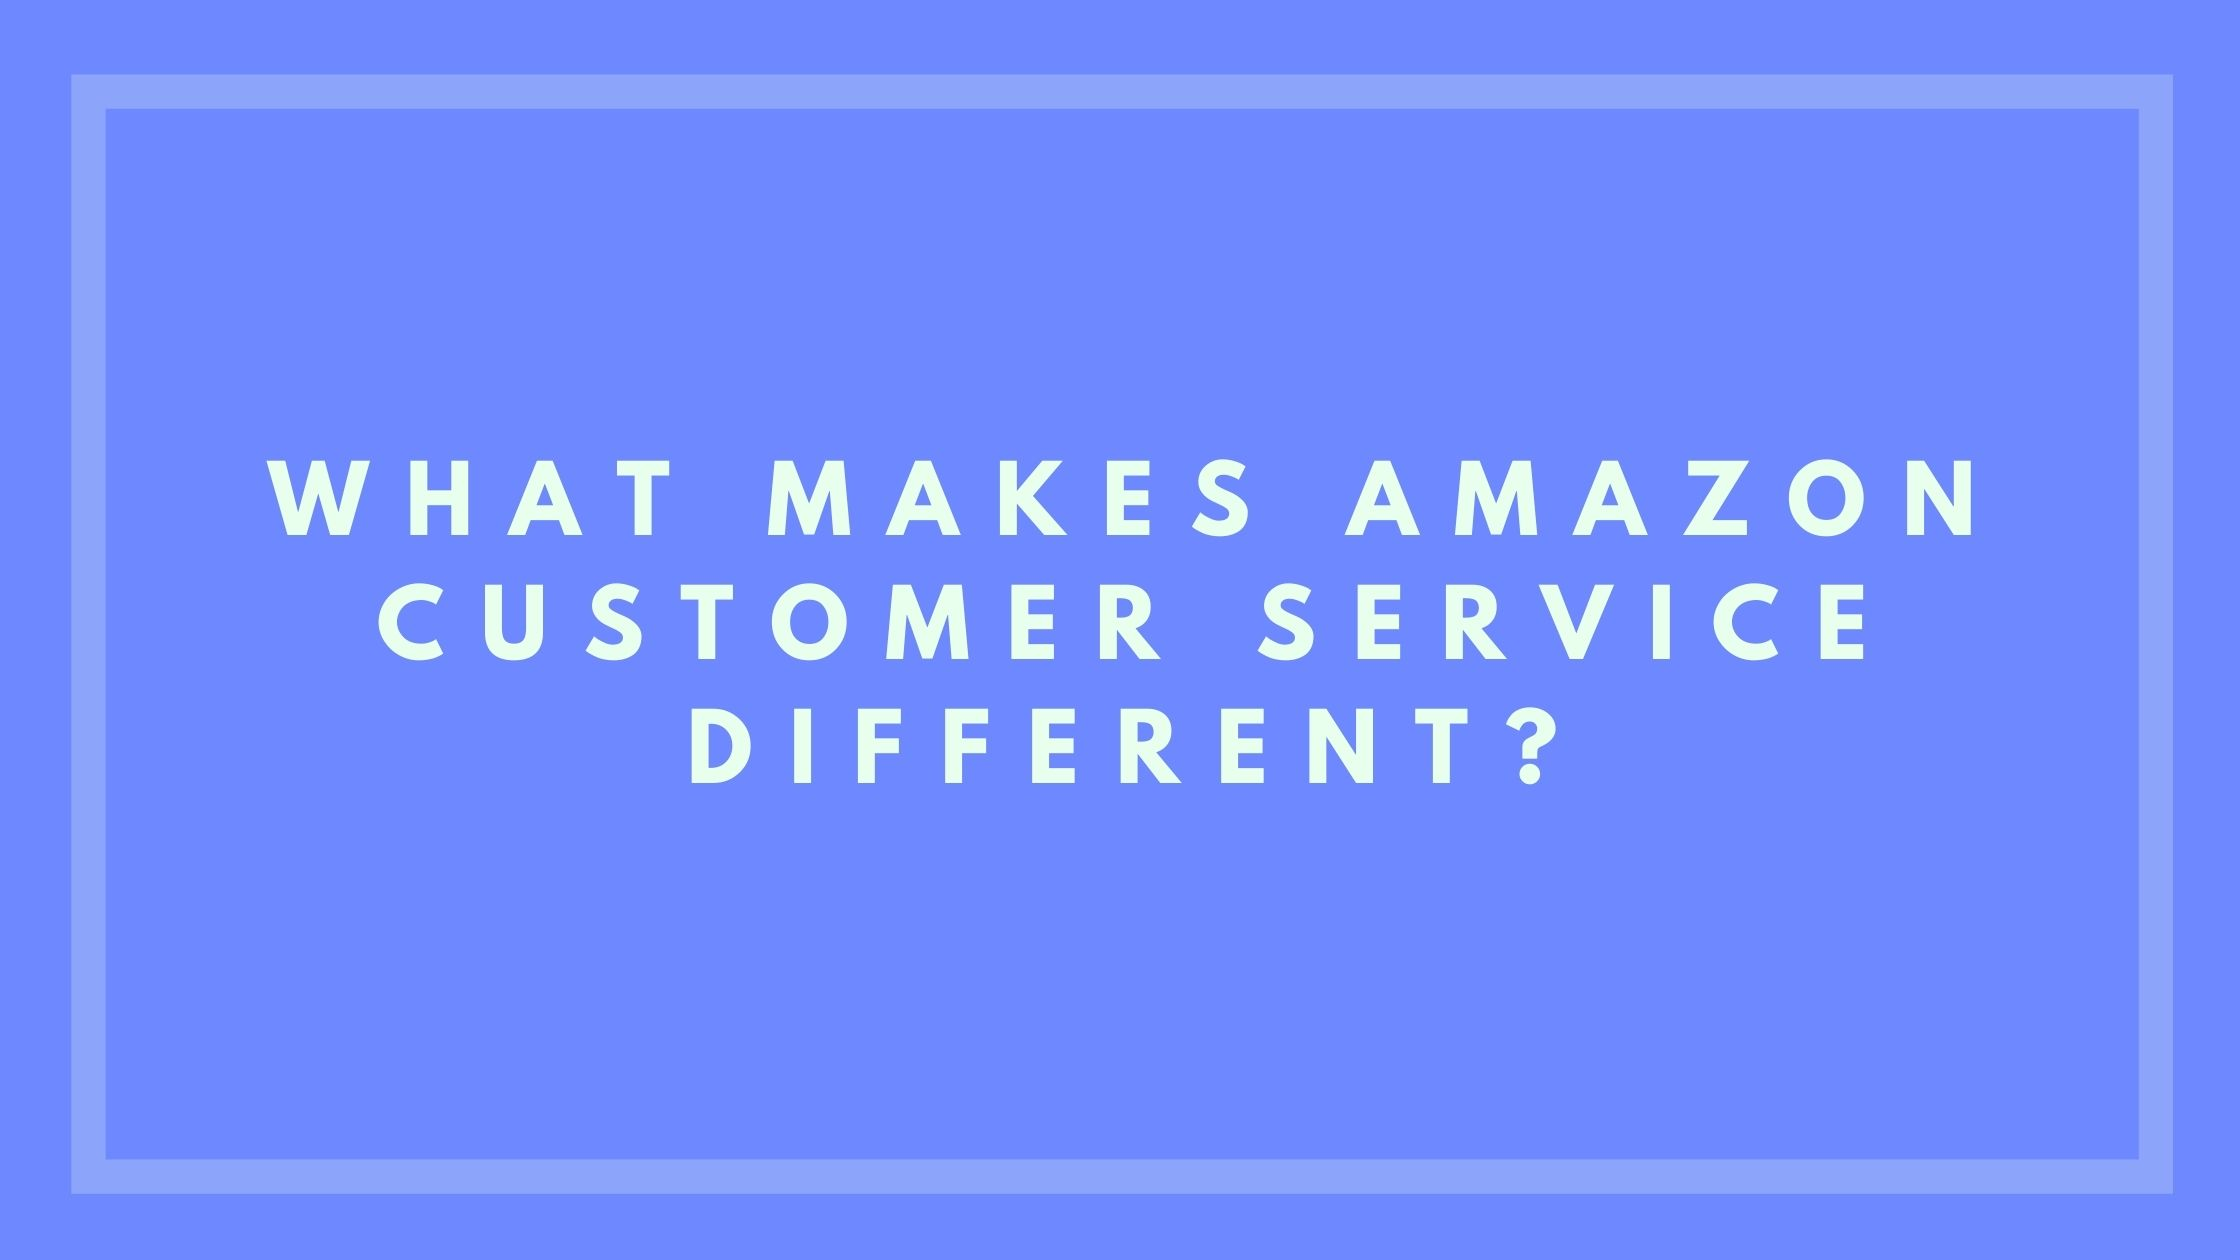 what makes amazon customer service different? w/ purple background